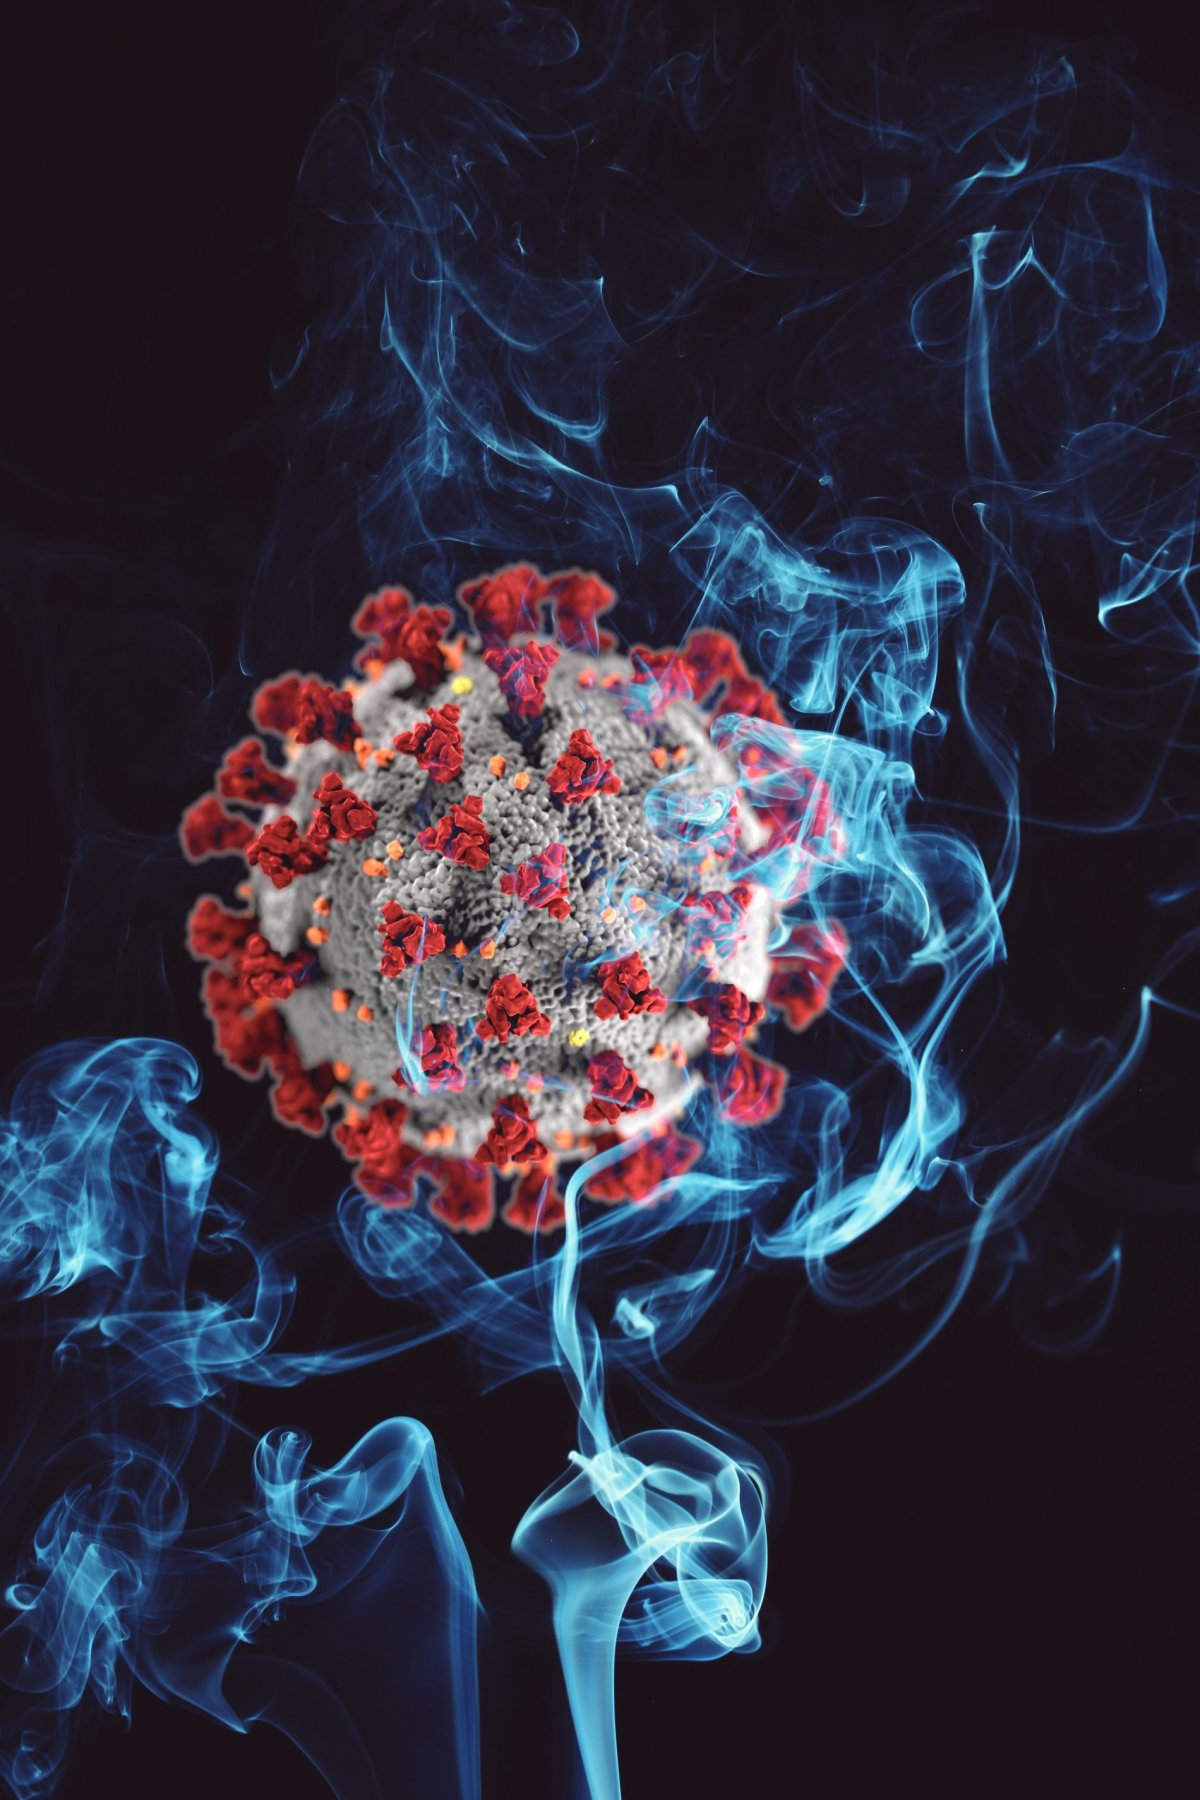 Up in smoke: Smoking increases SARS-CoV-2 receptors in the lung